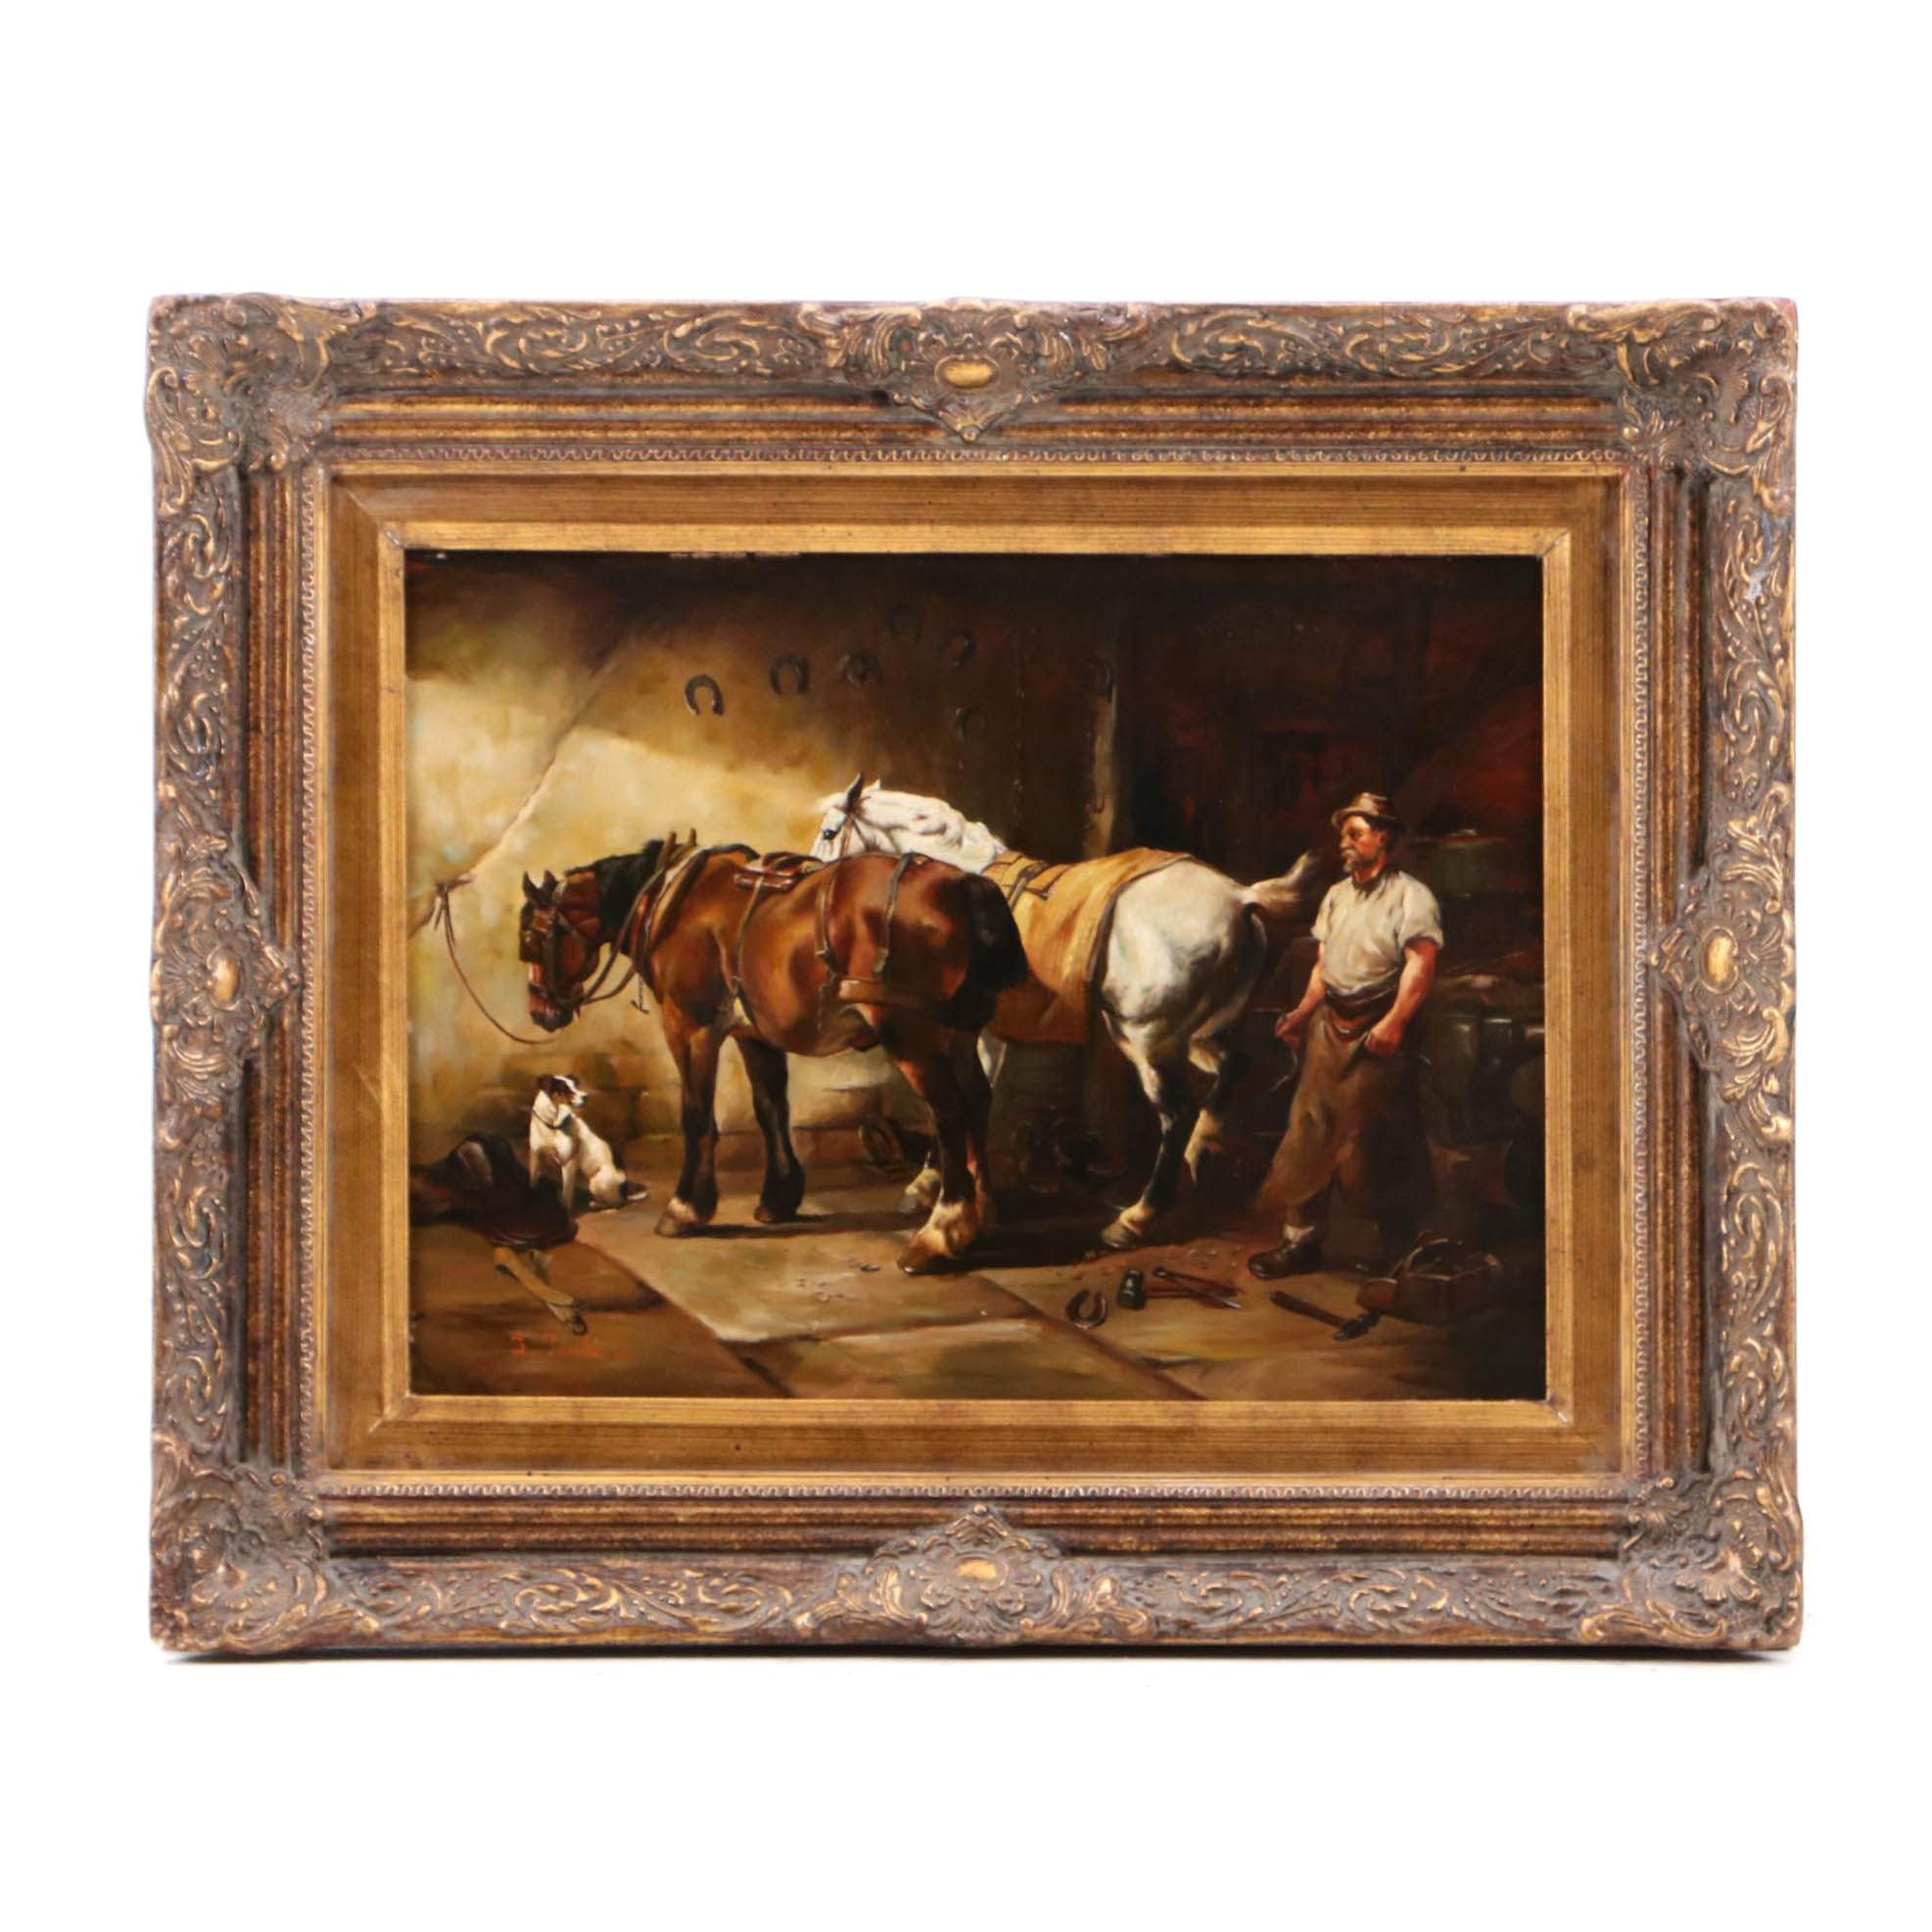 Fine Art, Antiques, and More